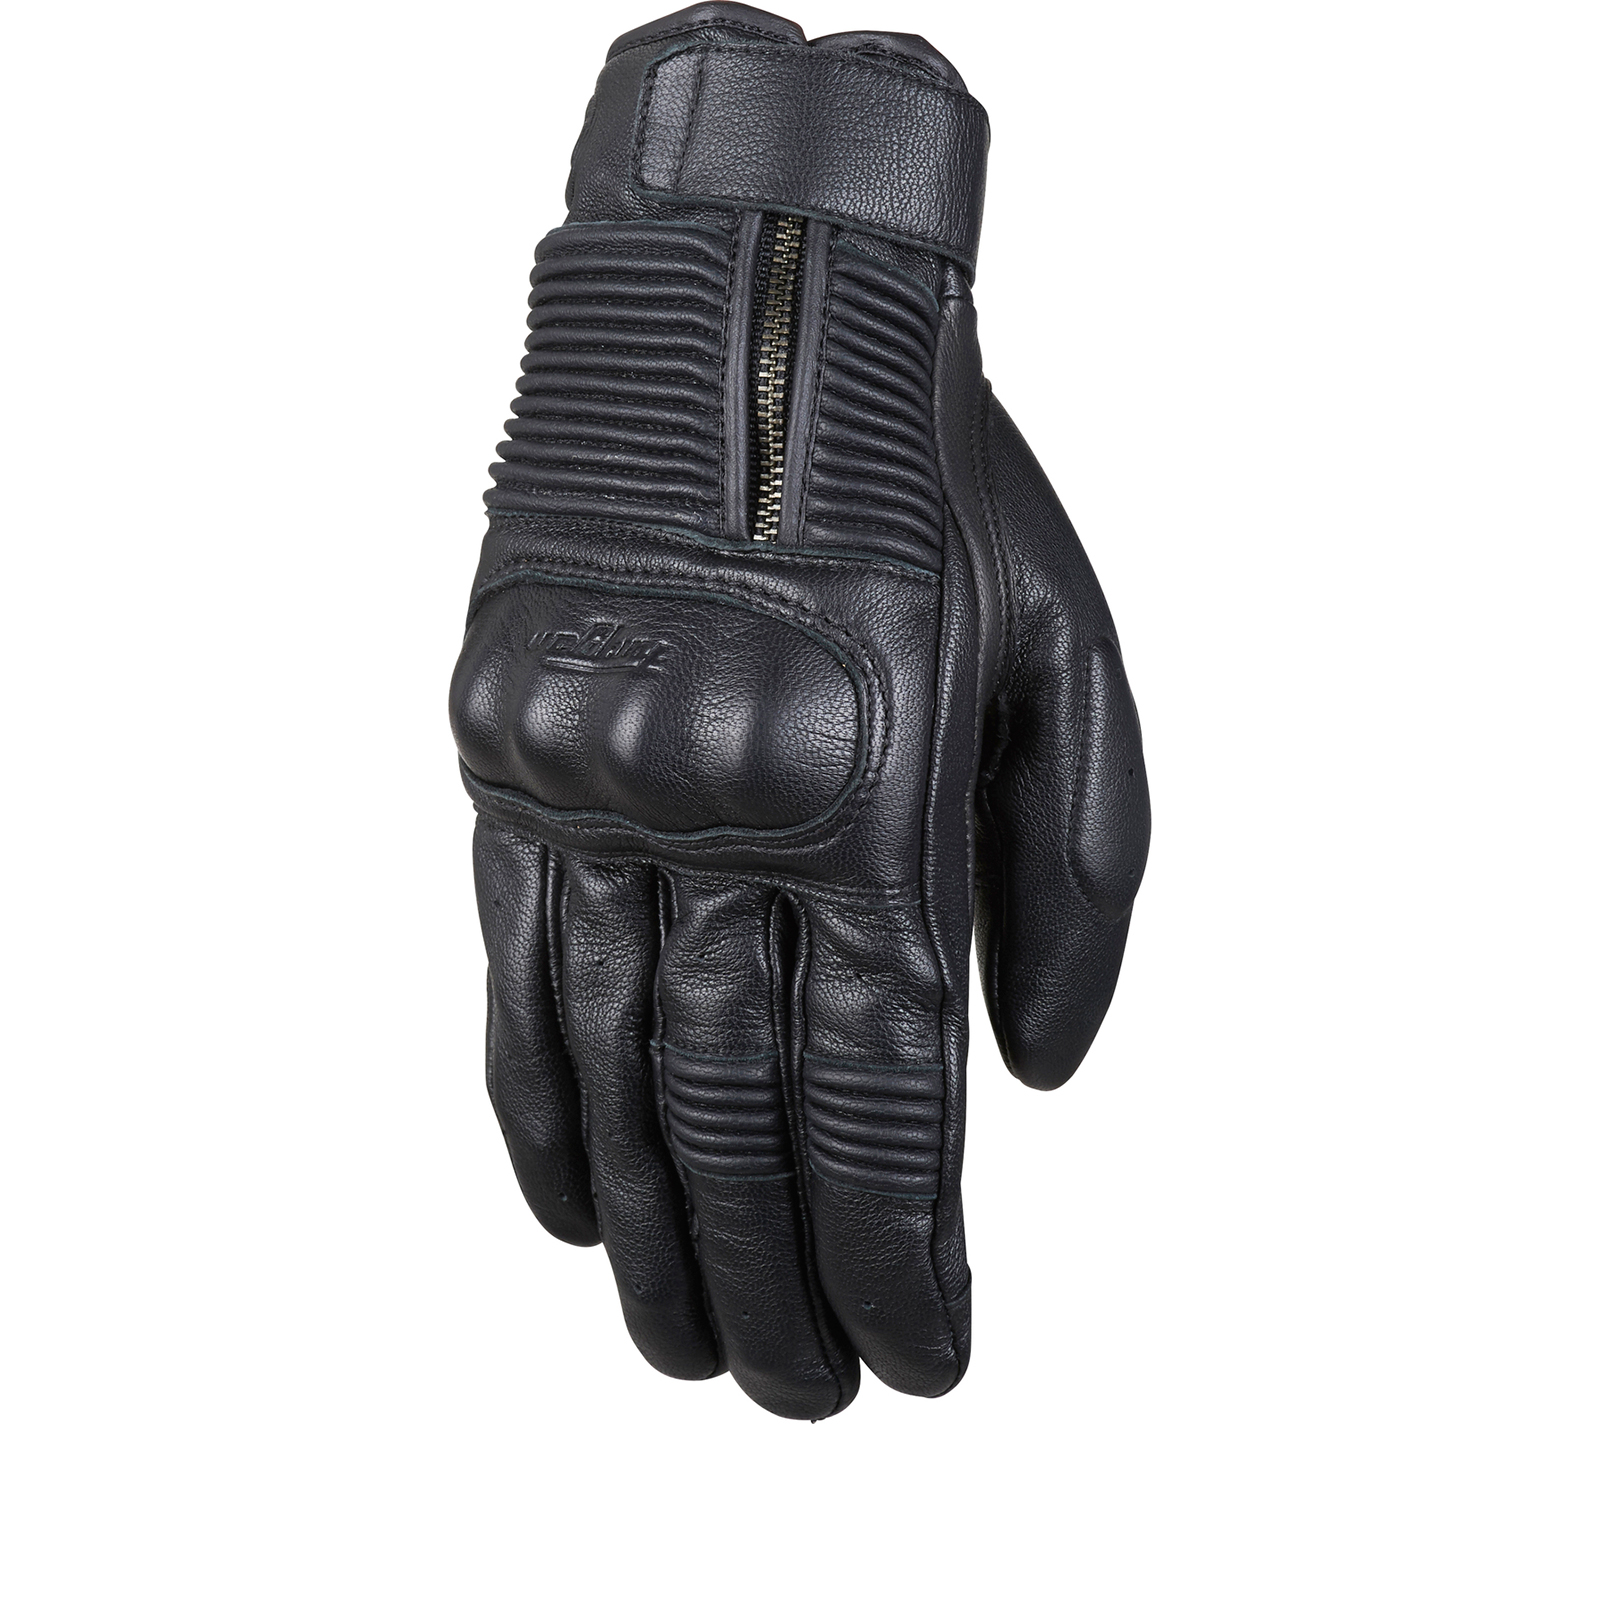 Motorcycle gloves d30 - Furygan James D3o Leather Motorcycle Gloves